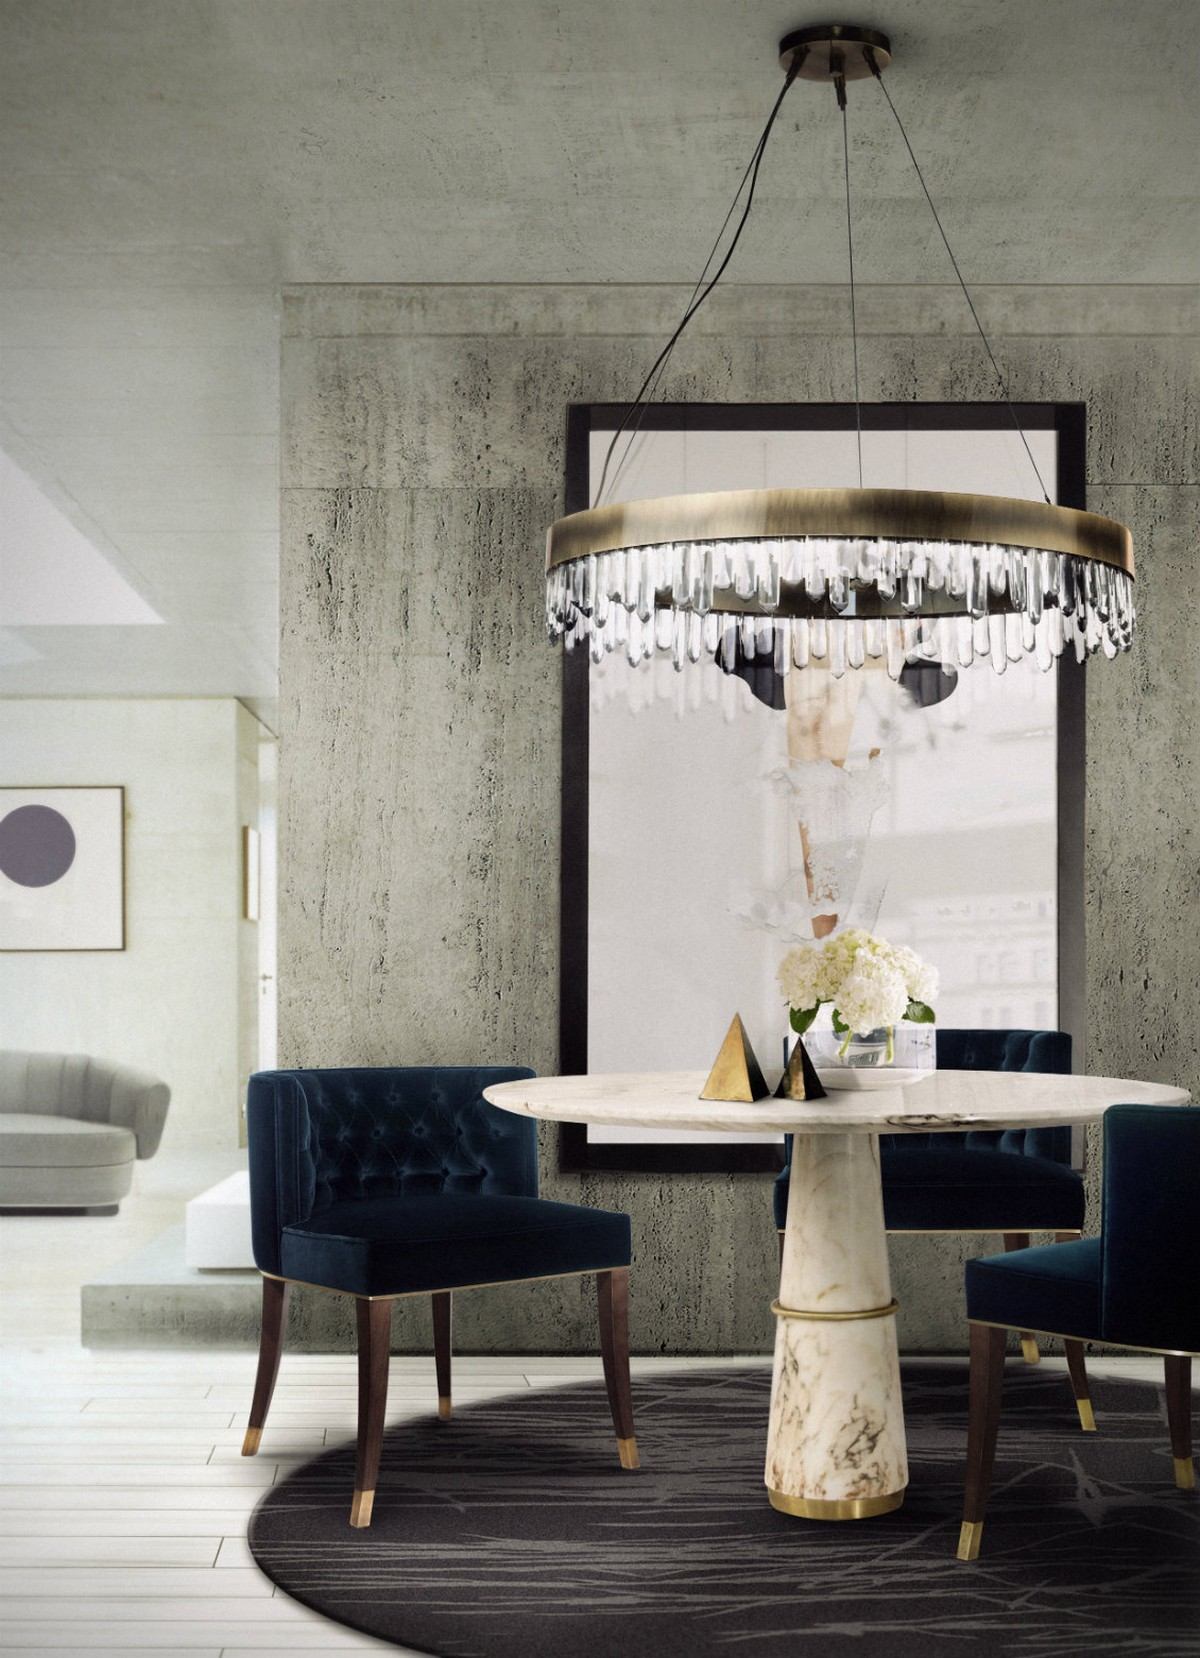 Agra Dining Table: Exclusive Dining Room Decor at Covet NYC dining room decor Agra Dining Table: Exclusive Dining Room Decor at Covet NYC 2 3